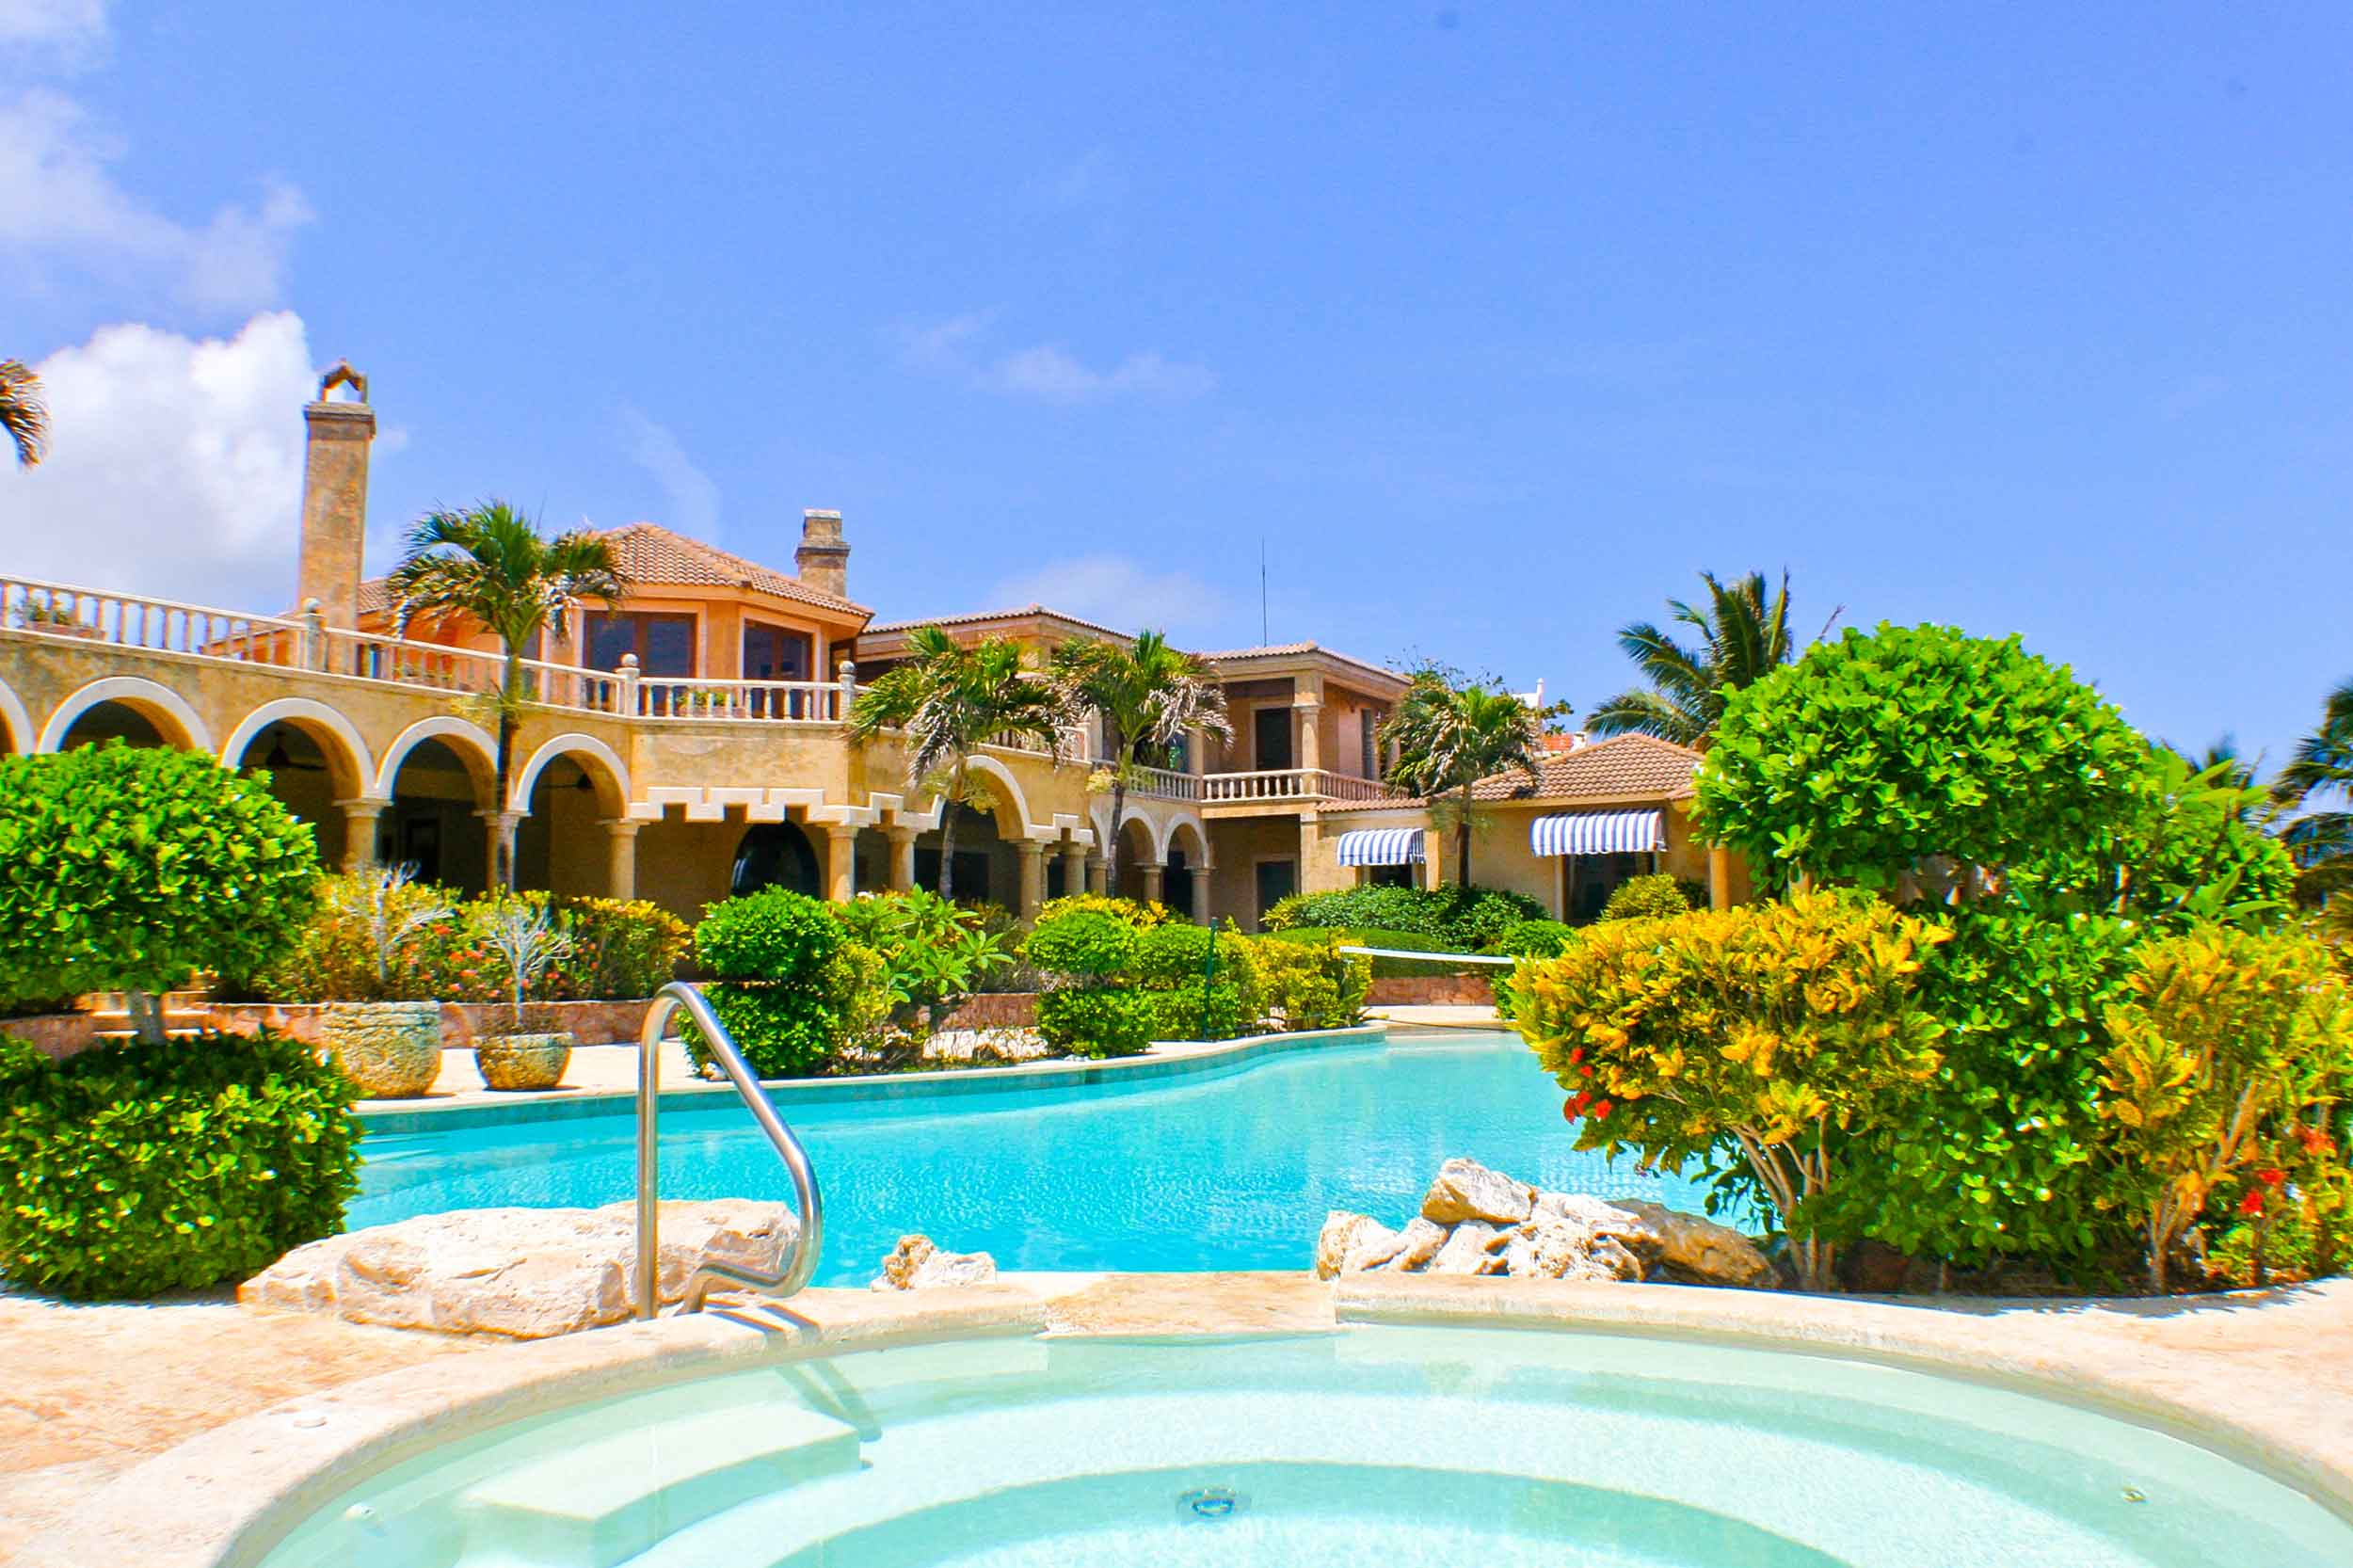 Invite the extended family to Villa Castellamonte. . . and don't forget the suits and boards (wet suits not required).